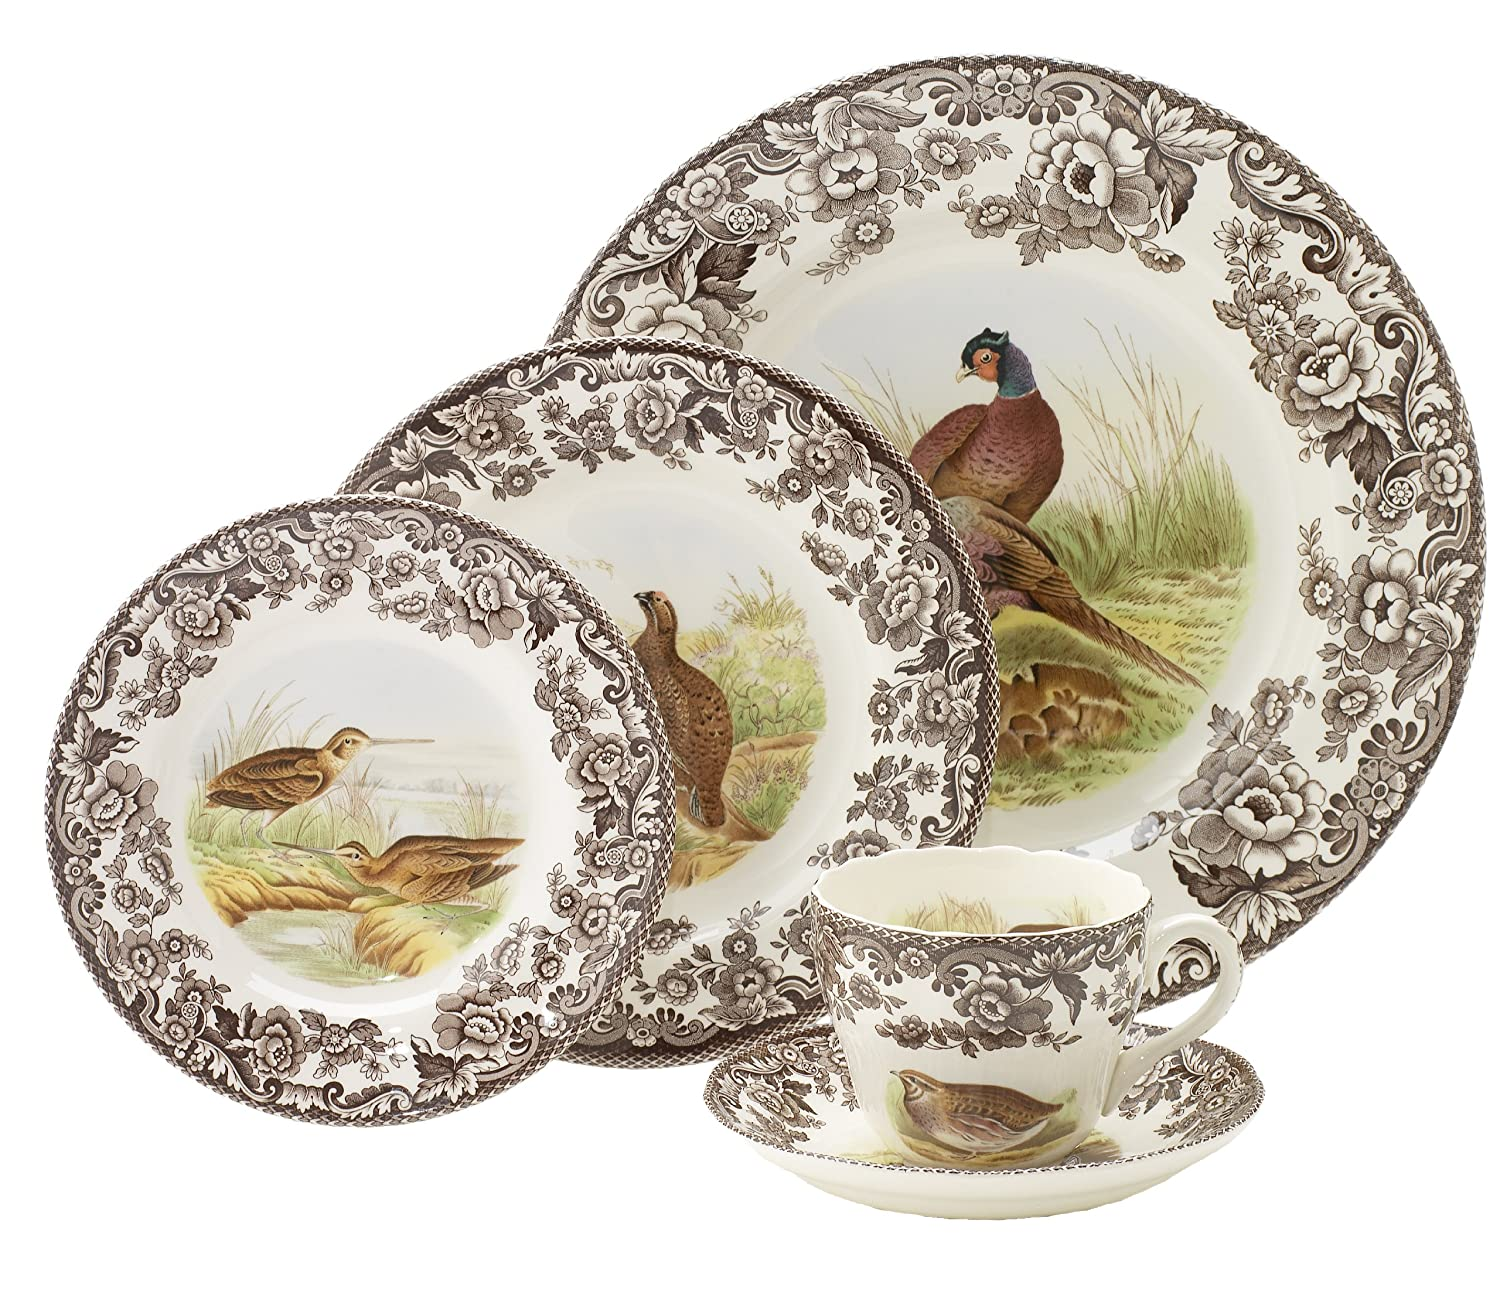 Amazon.com | Spode Woodland 5 Piece Placesetting Bread Plates Bread u0026 Butter Plates  sc 1 st  Amazon.com & Amazon.com | Spode Woodland 5 Piece Placesetting: Bread Plates ...